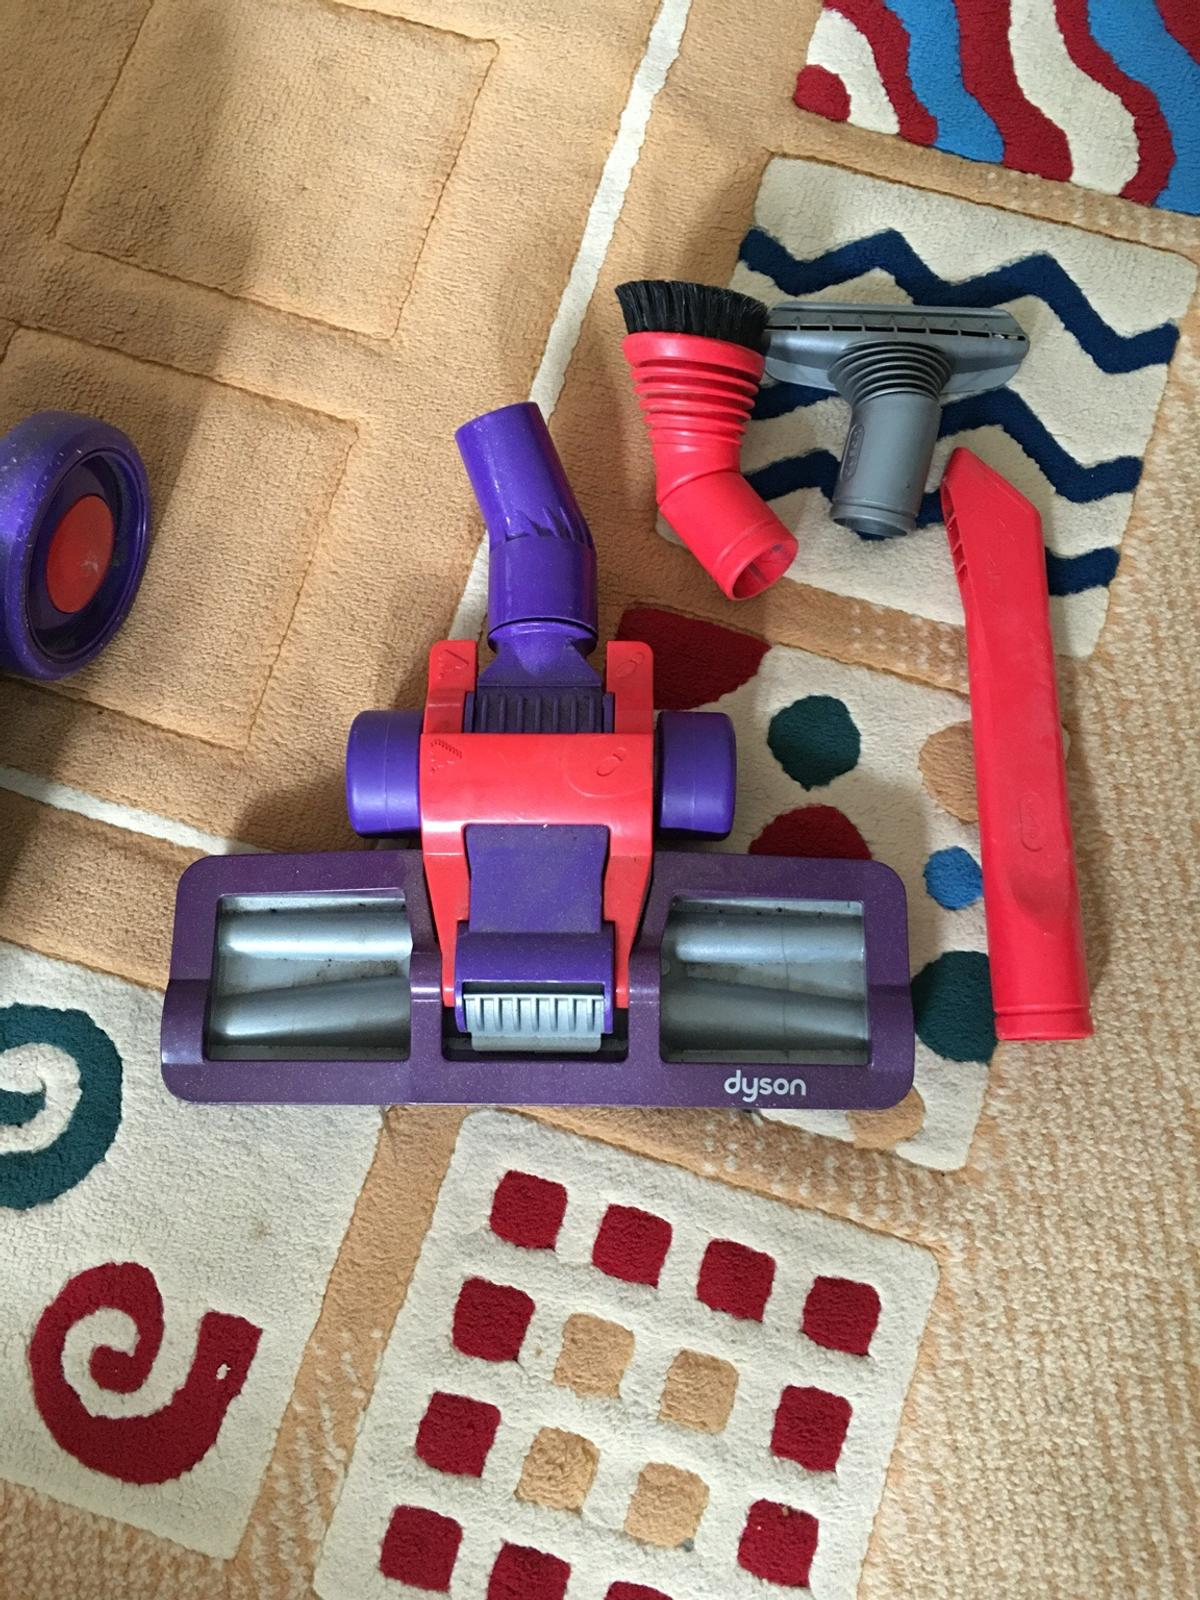 Dyson DC07 for Spares and Repairs